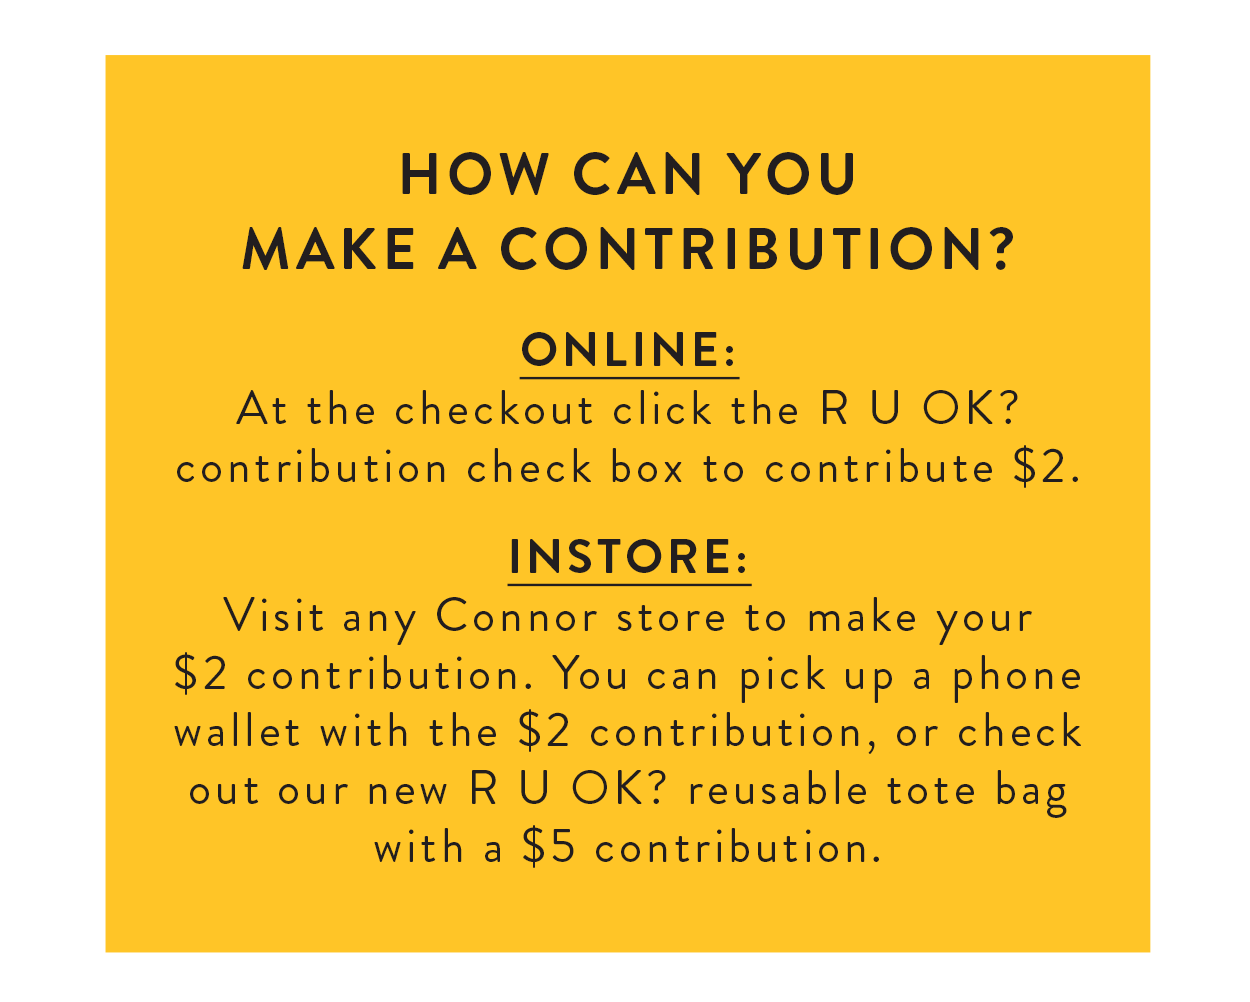 How can you make a contribution?